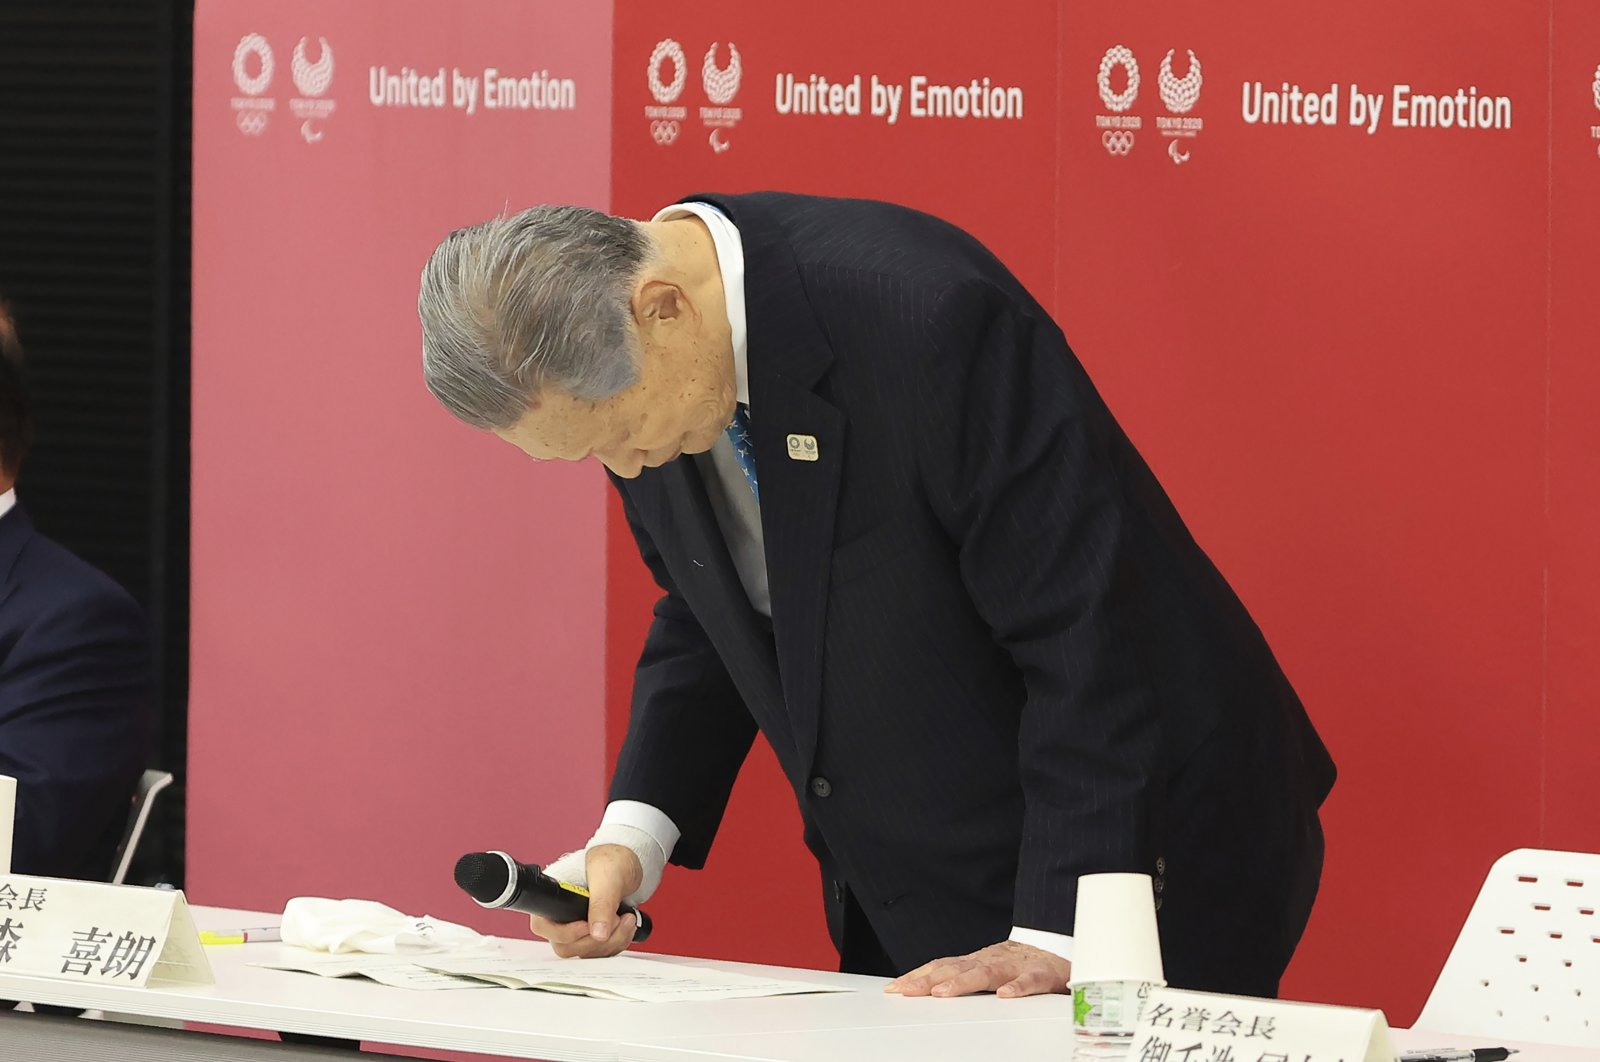 Tokyo 2020 Olympics Organizing Committee President Yoshiro Mori announces his resignation at a meeting with council and executive board members at the committee headquarters in Tokyo, Japan, Feb. 12, 2021. (AP Photo)